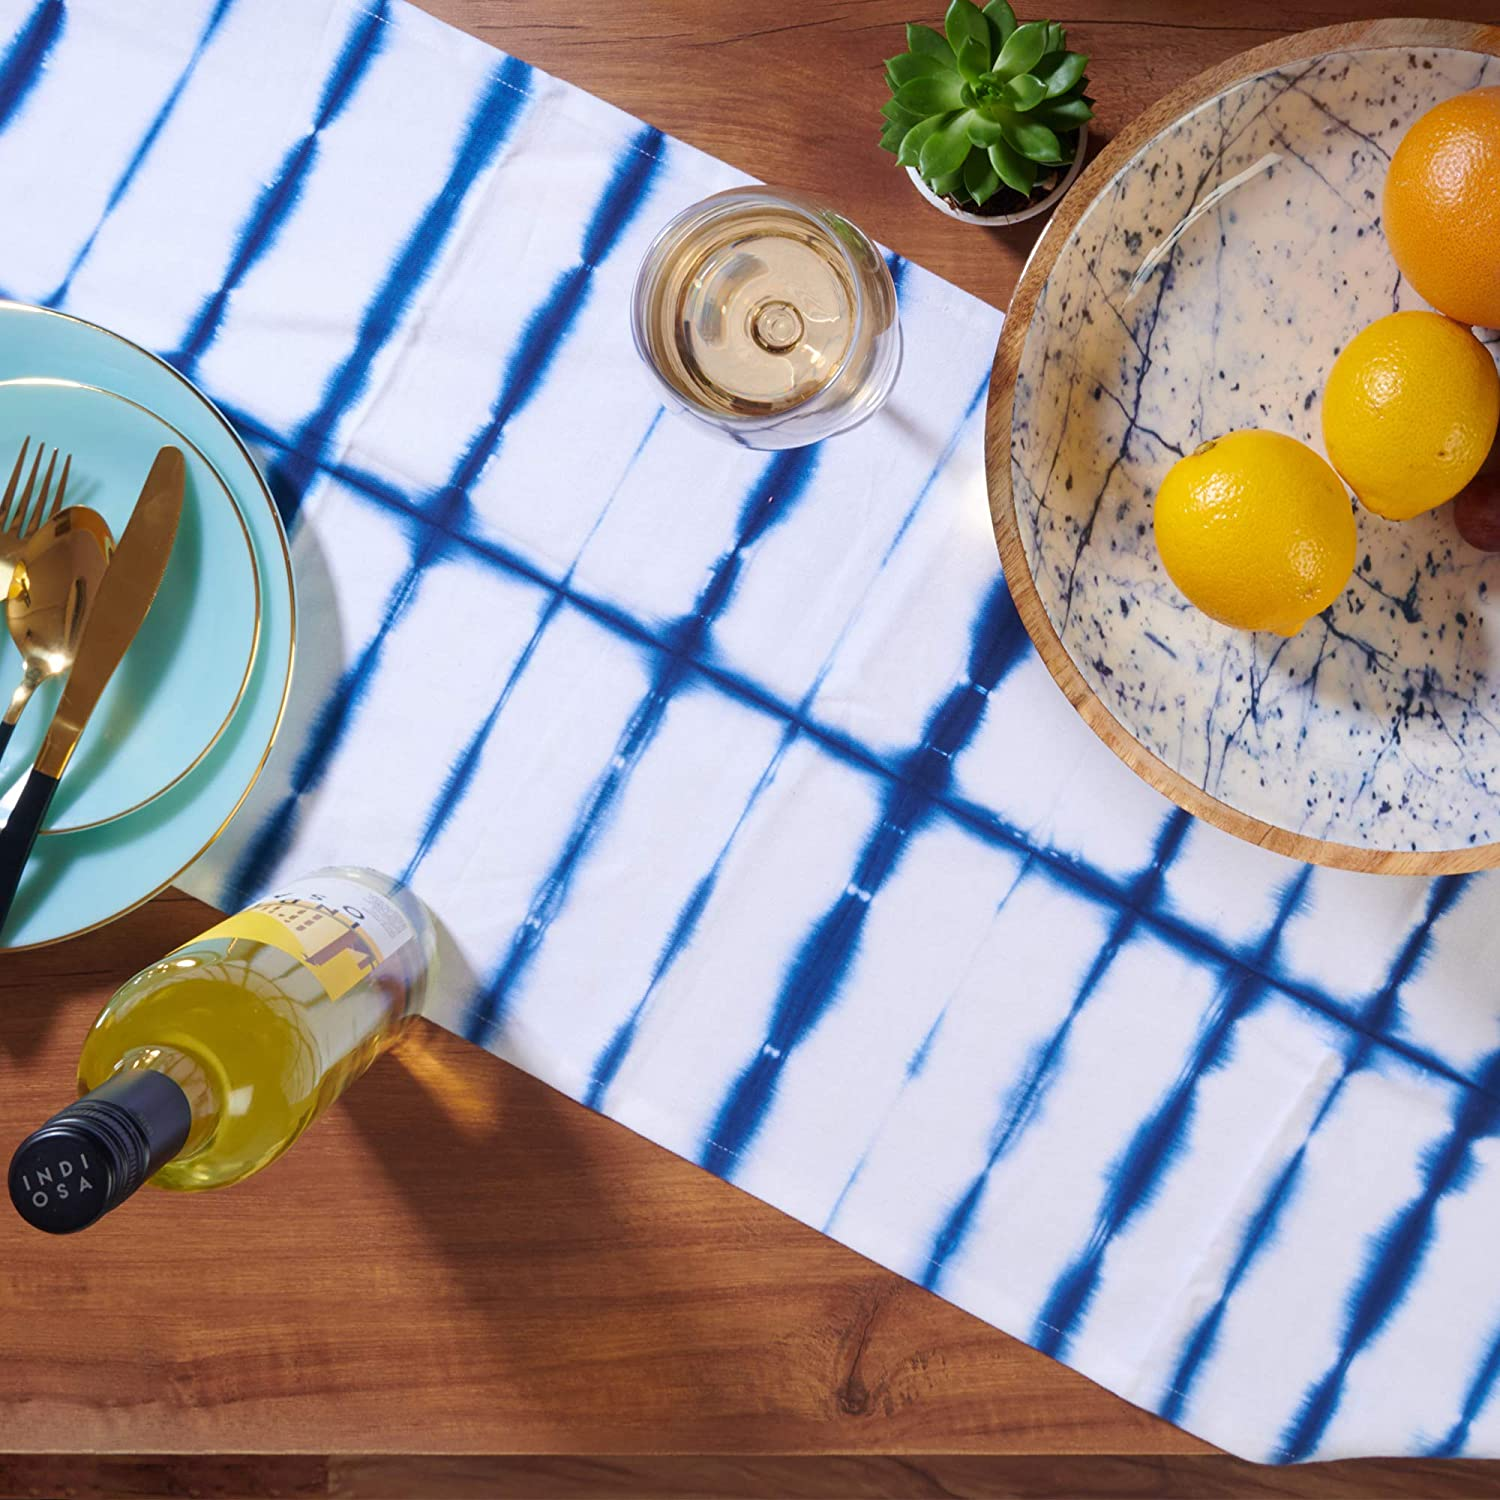 Folkulture Table Runner 14 x 72 inch with Tassels, Boho Table Runner for Farmhouse Style Table Décor or Modern Kitchen Decor, 100% Cotton, Navy Blue Shibori: Home & Kitchen